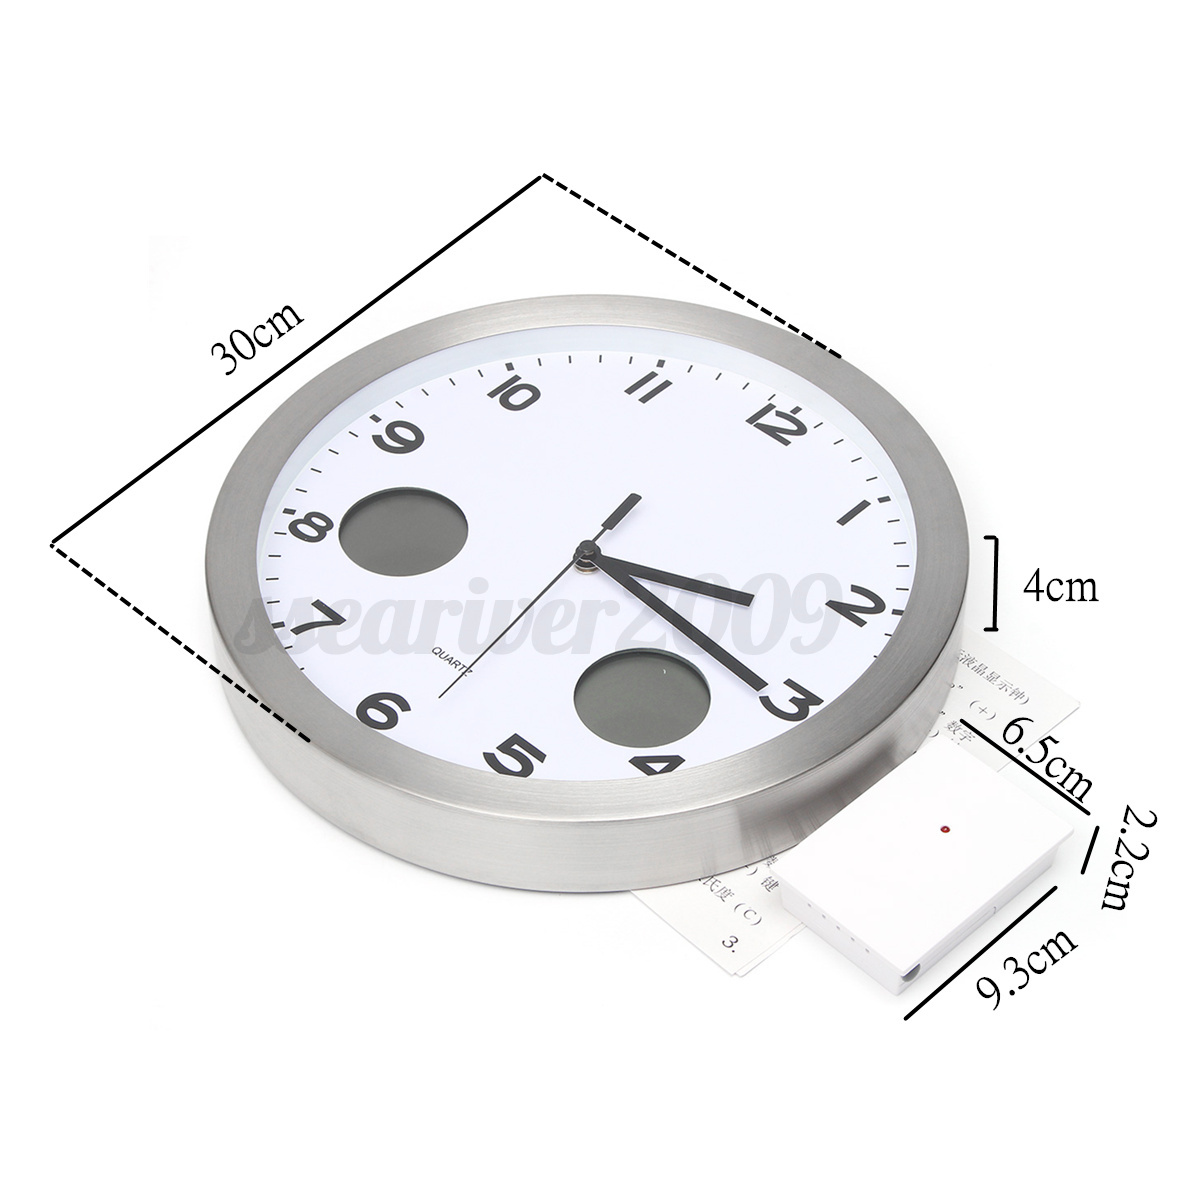 stainless steel wall clock thermometer with indoor outdoor temperature decor ebay. Black Bedroom Furniture Sets. Home Design Ideas